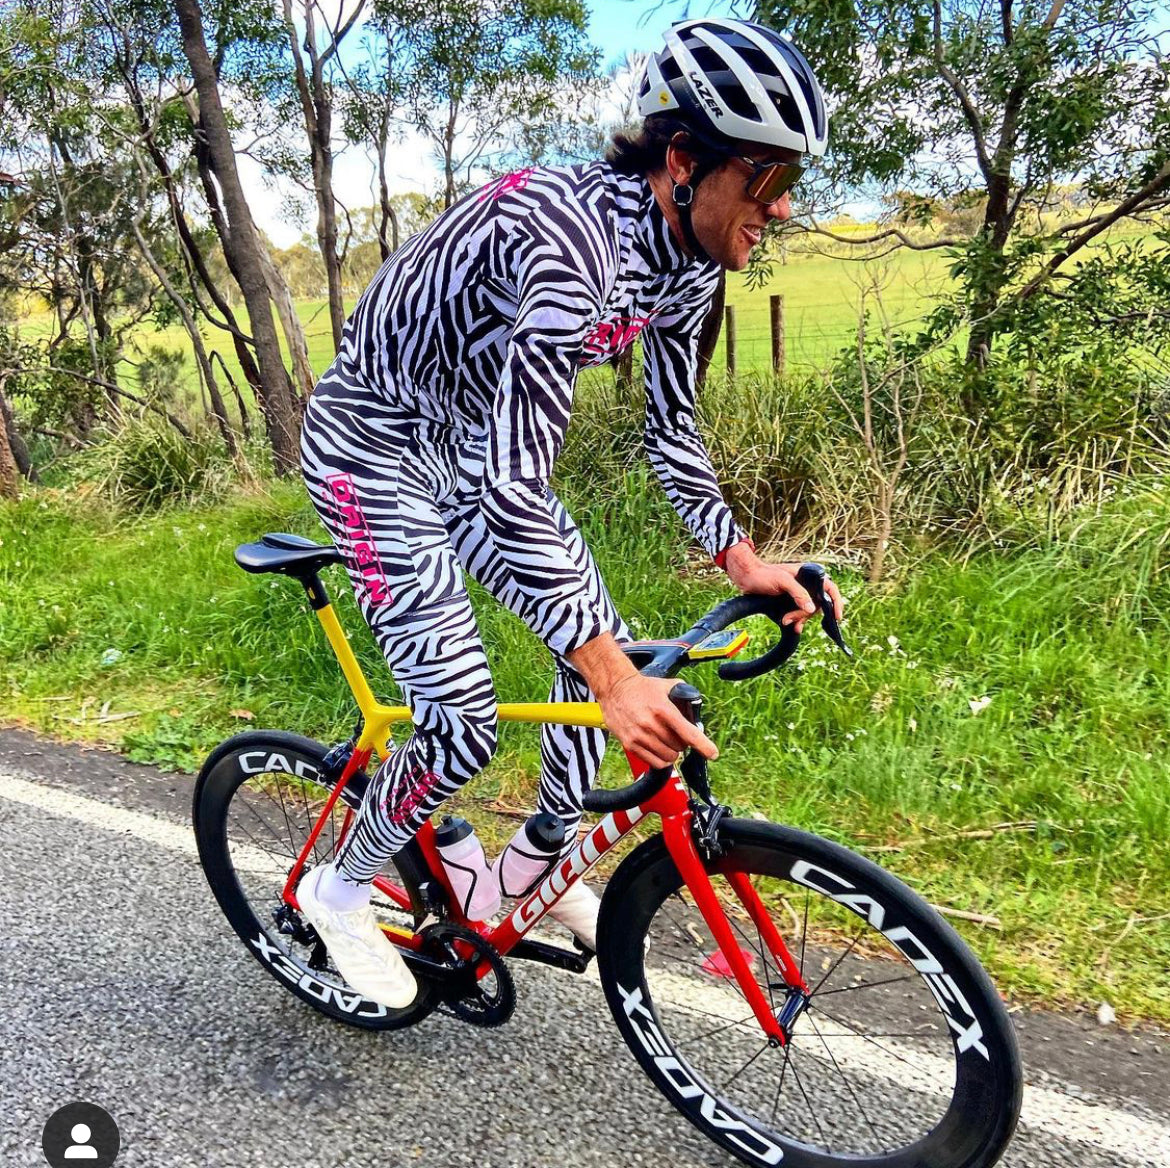 Cycling style